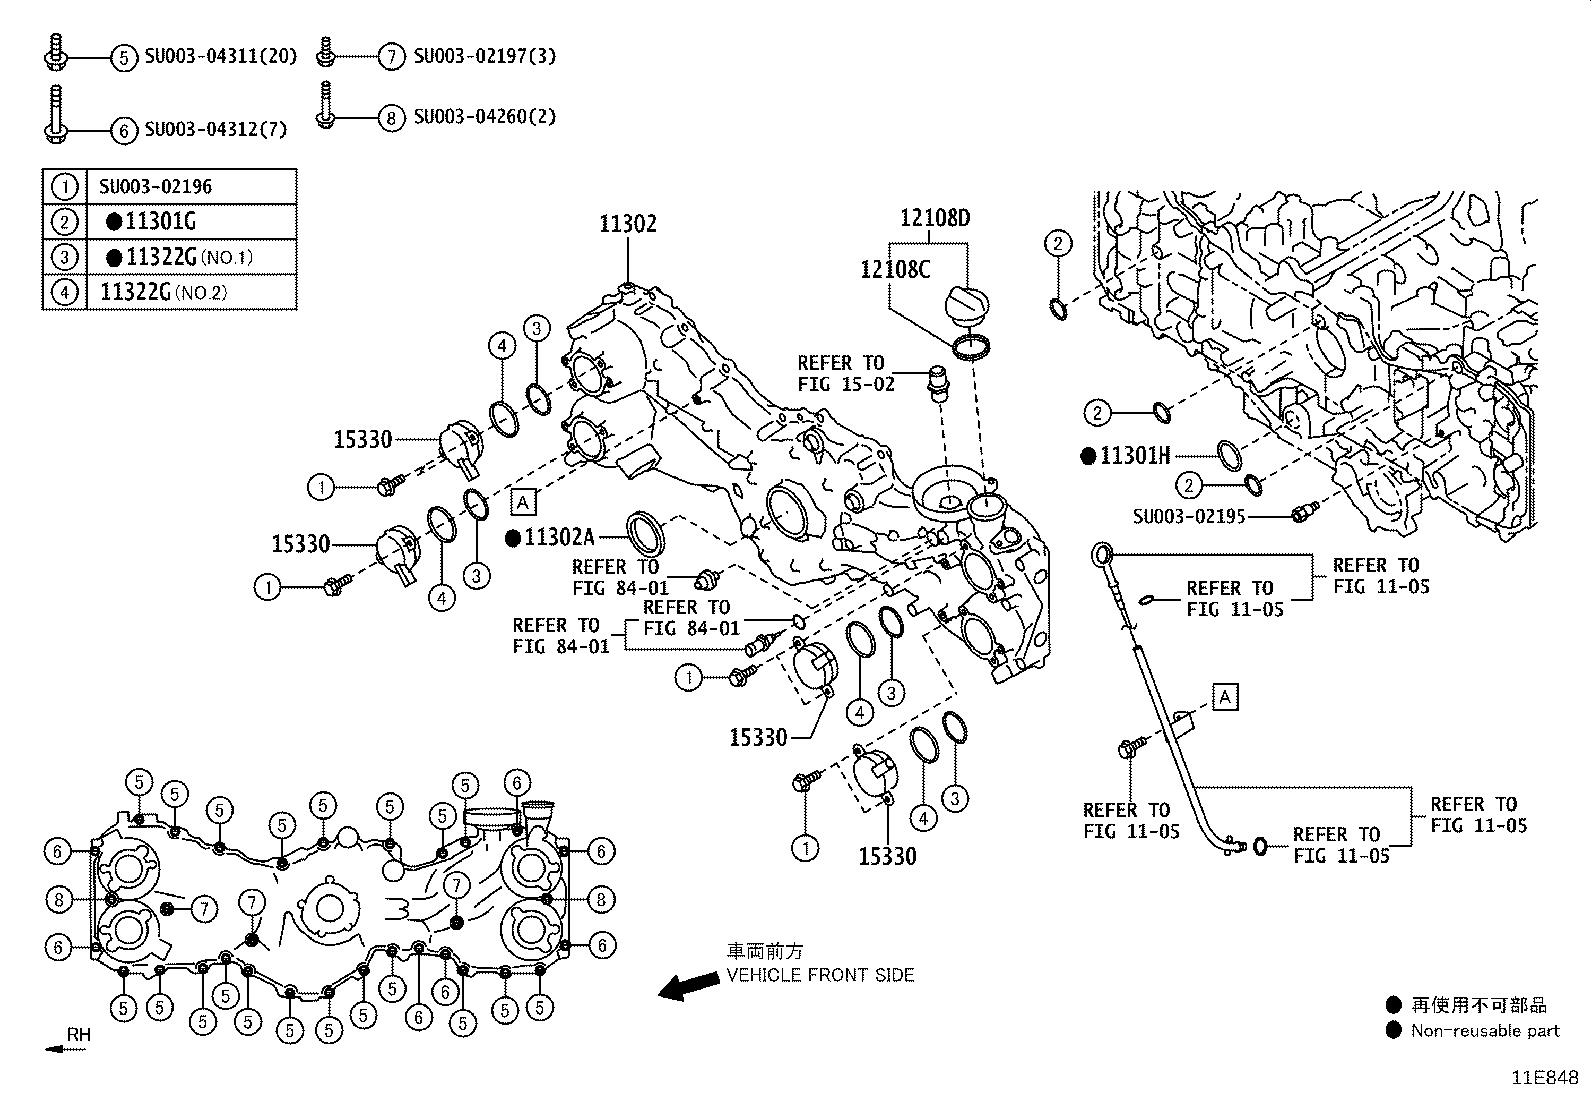 Toyota 86 Engine Variable Valve Timing (VVT) Solenoid